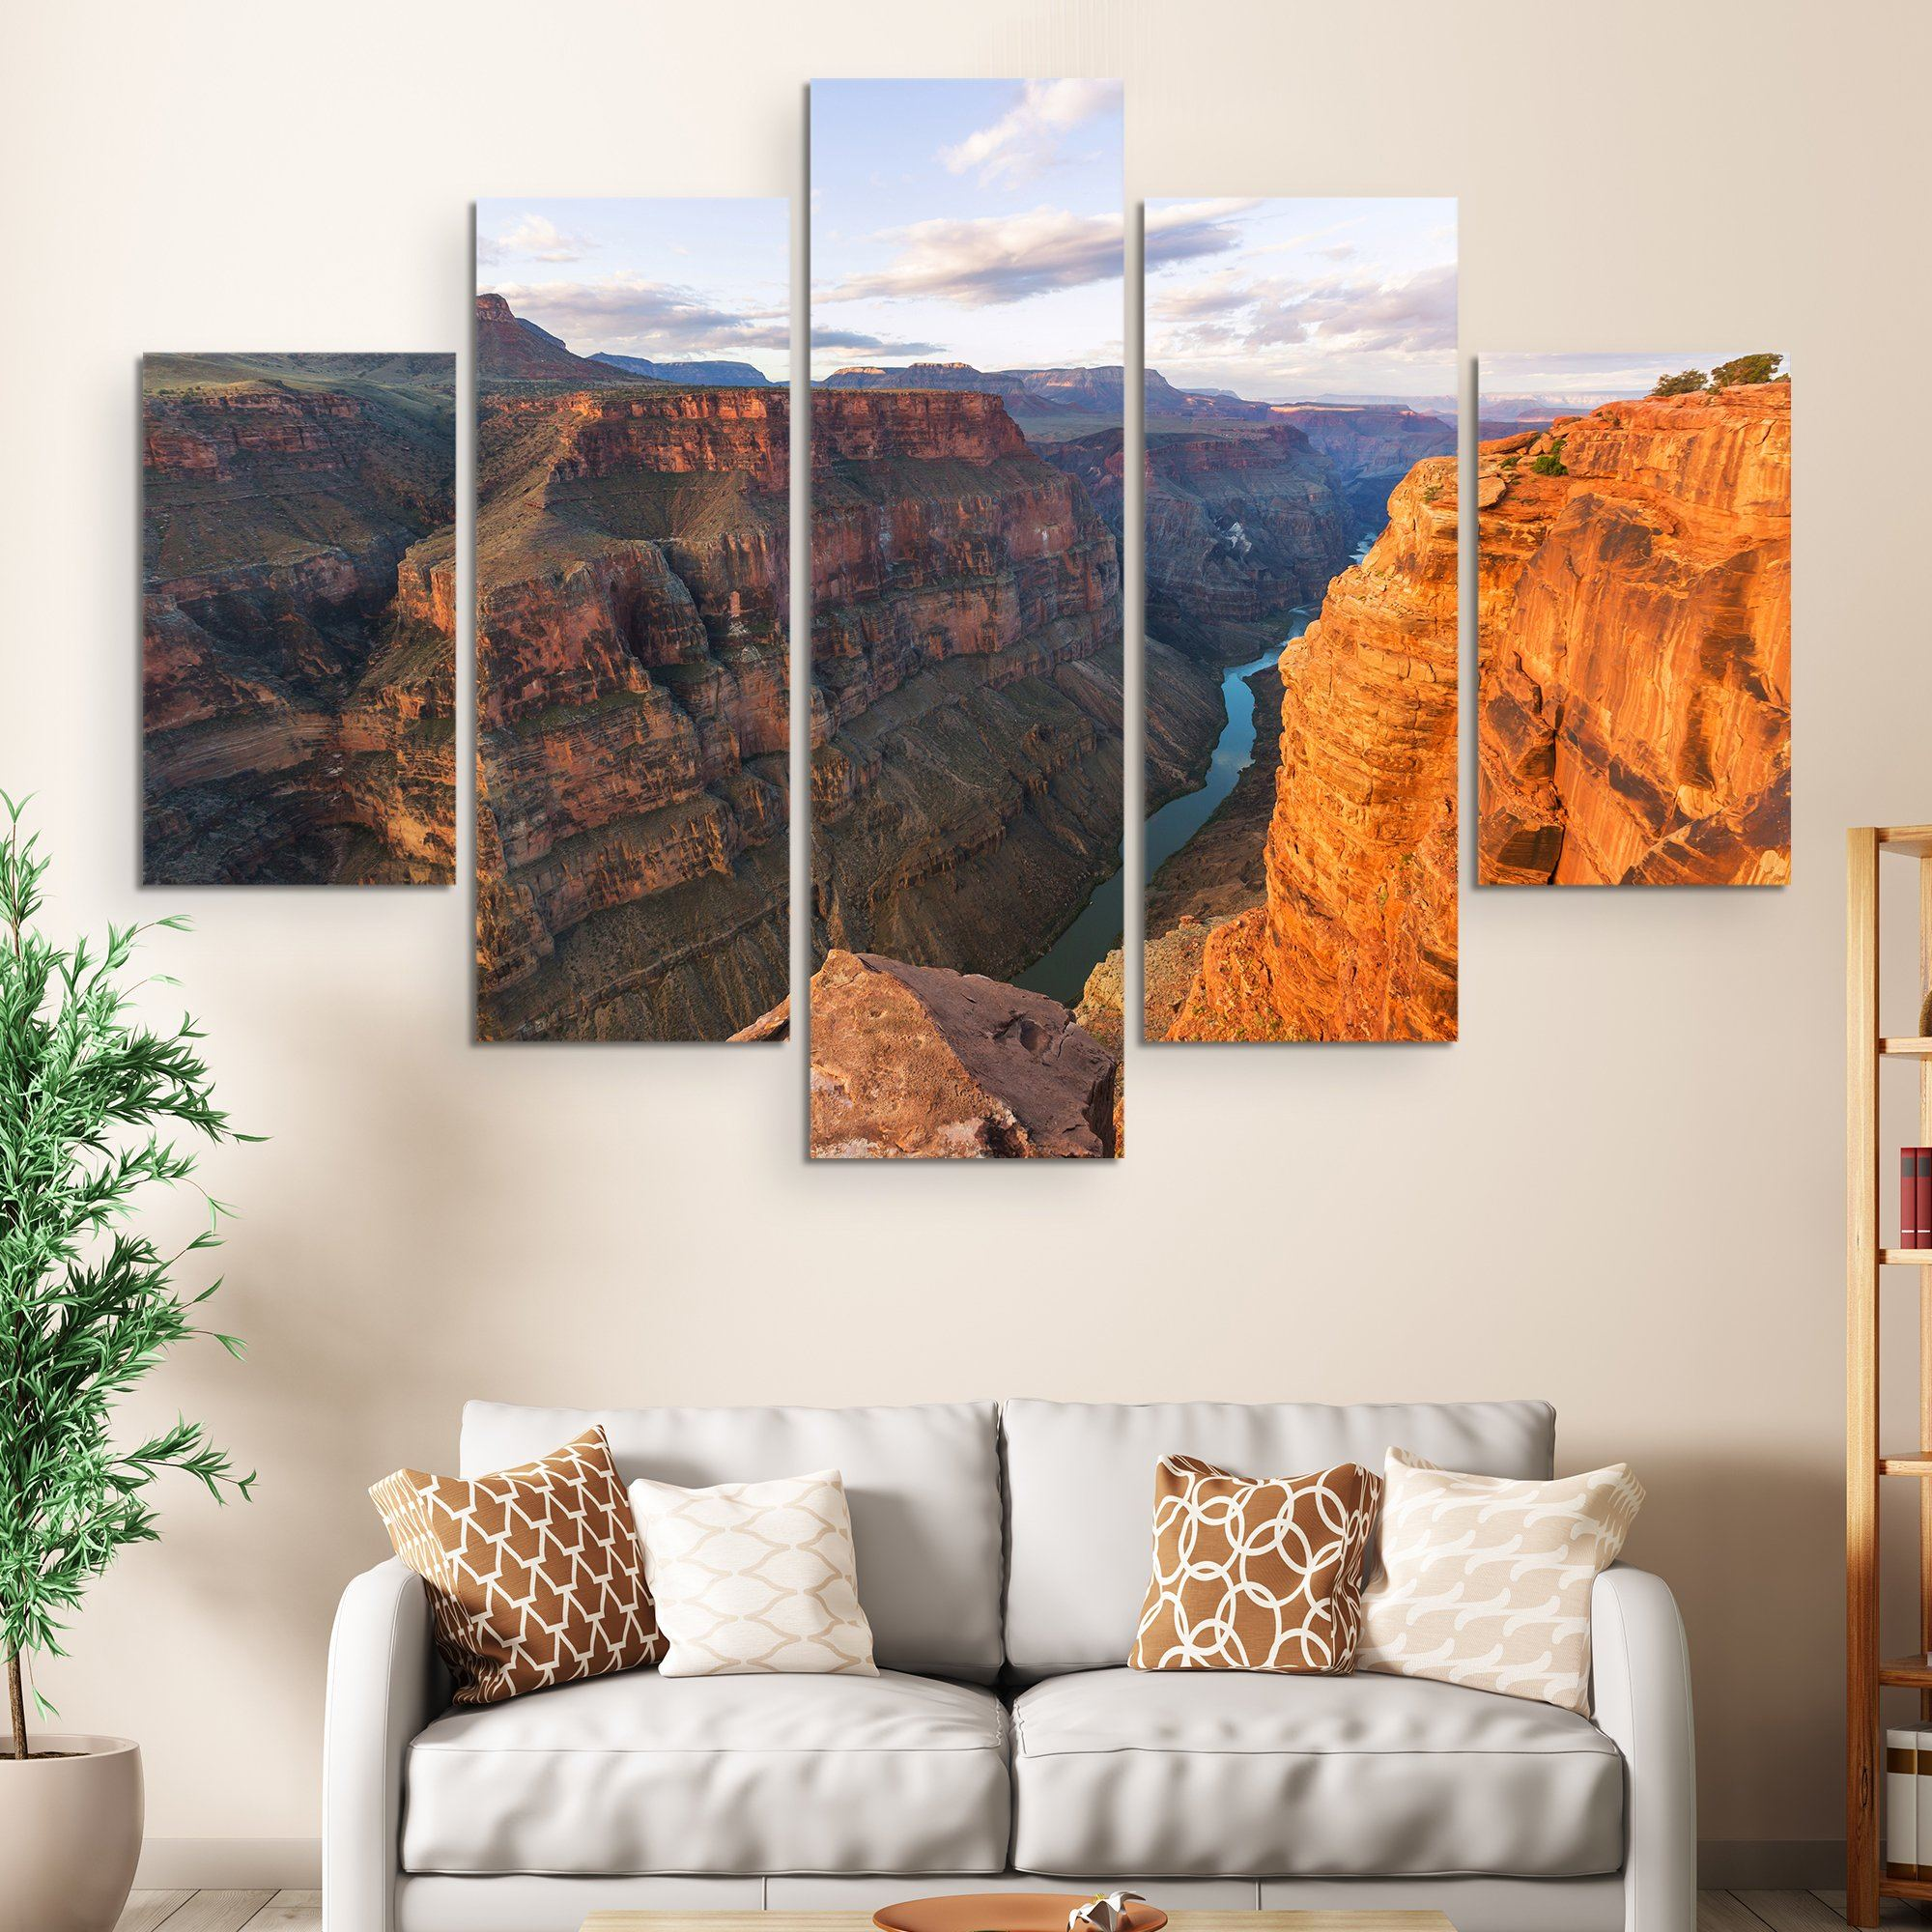 Grand Canyon National Park wall art 5 piece